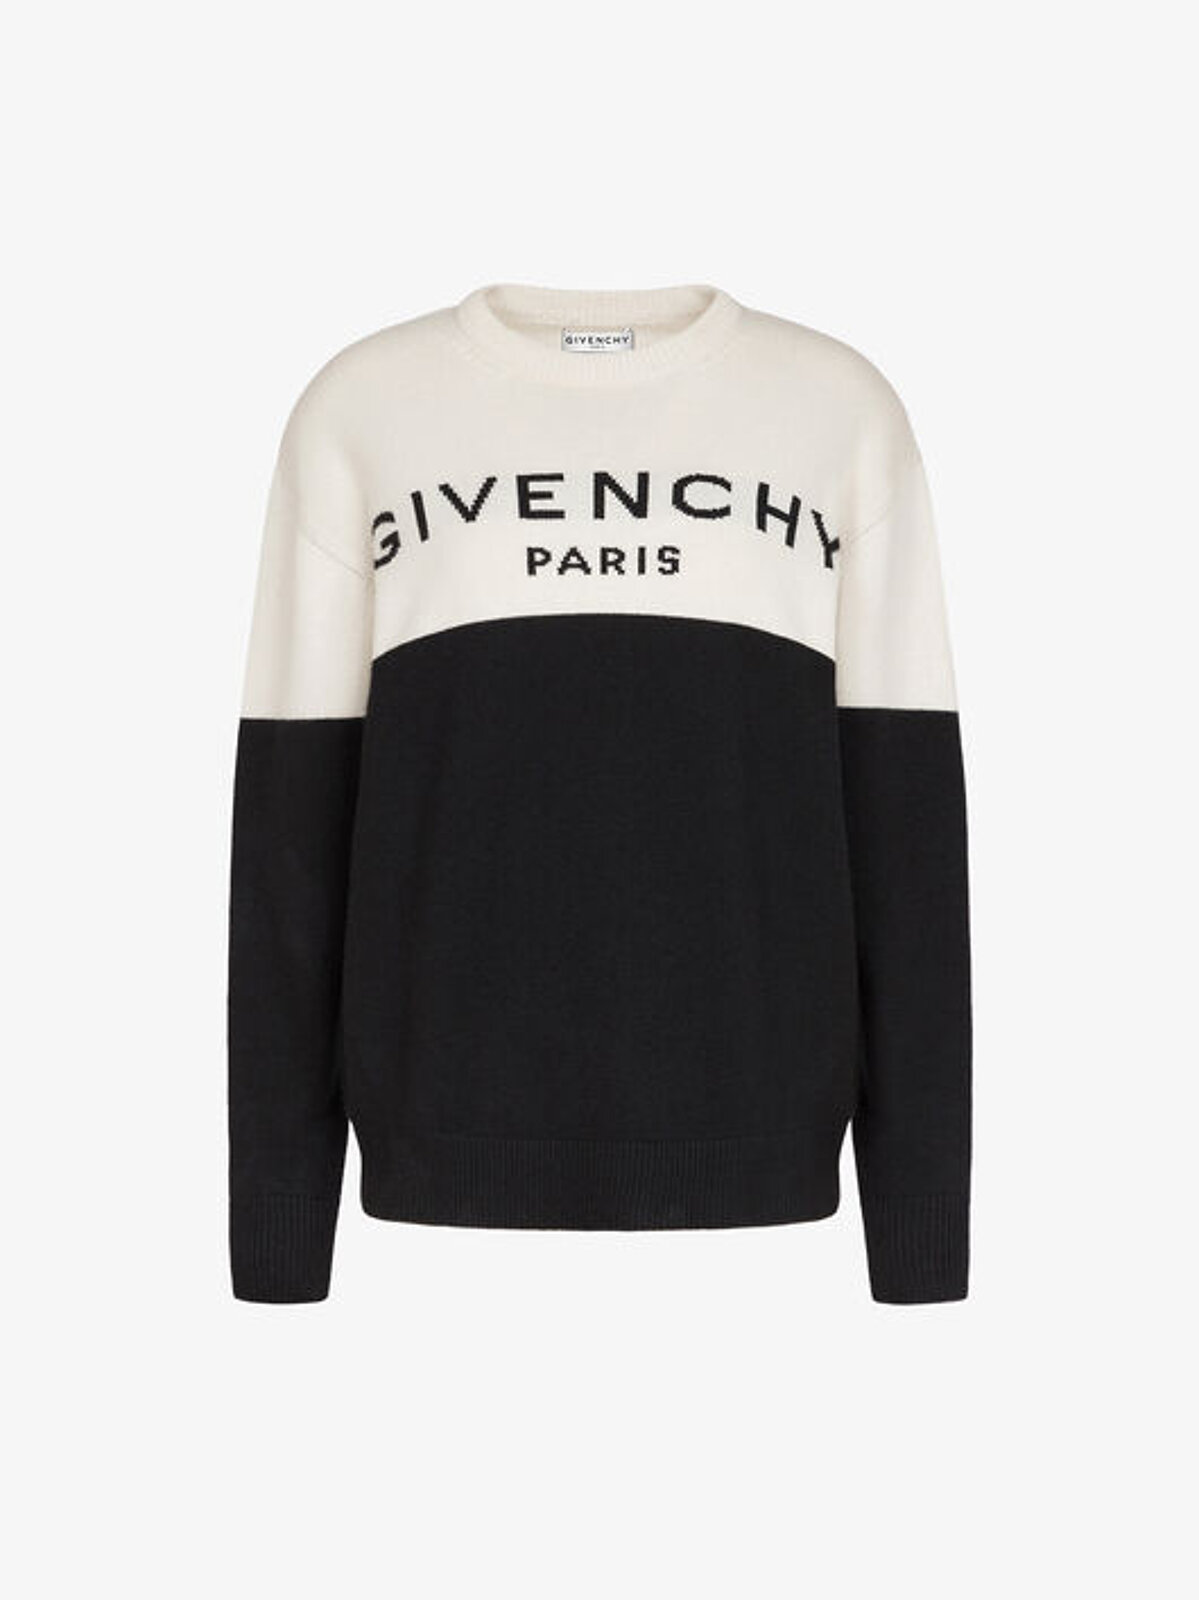 Two-tone Cashmere Pullover - Givenchy